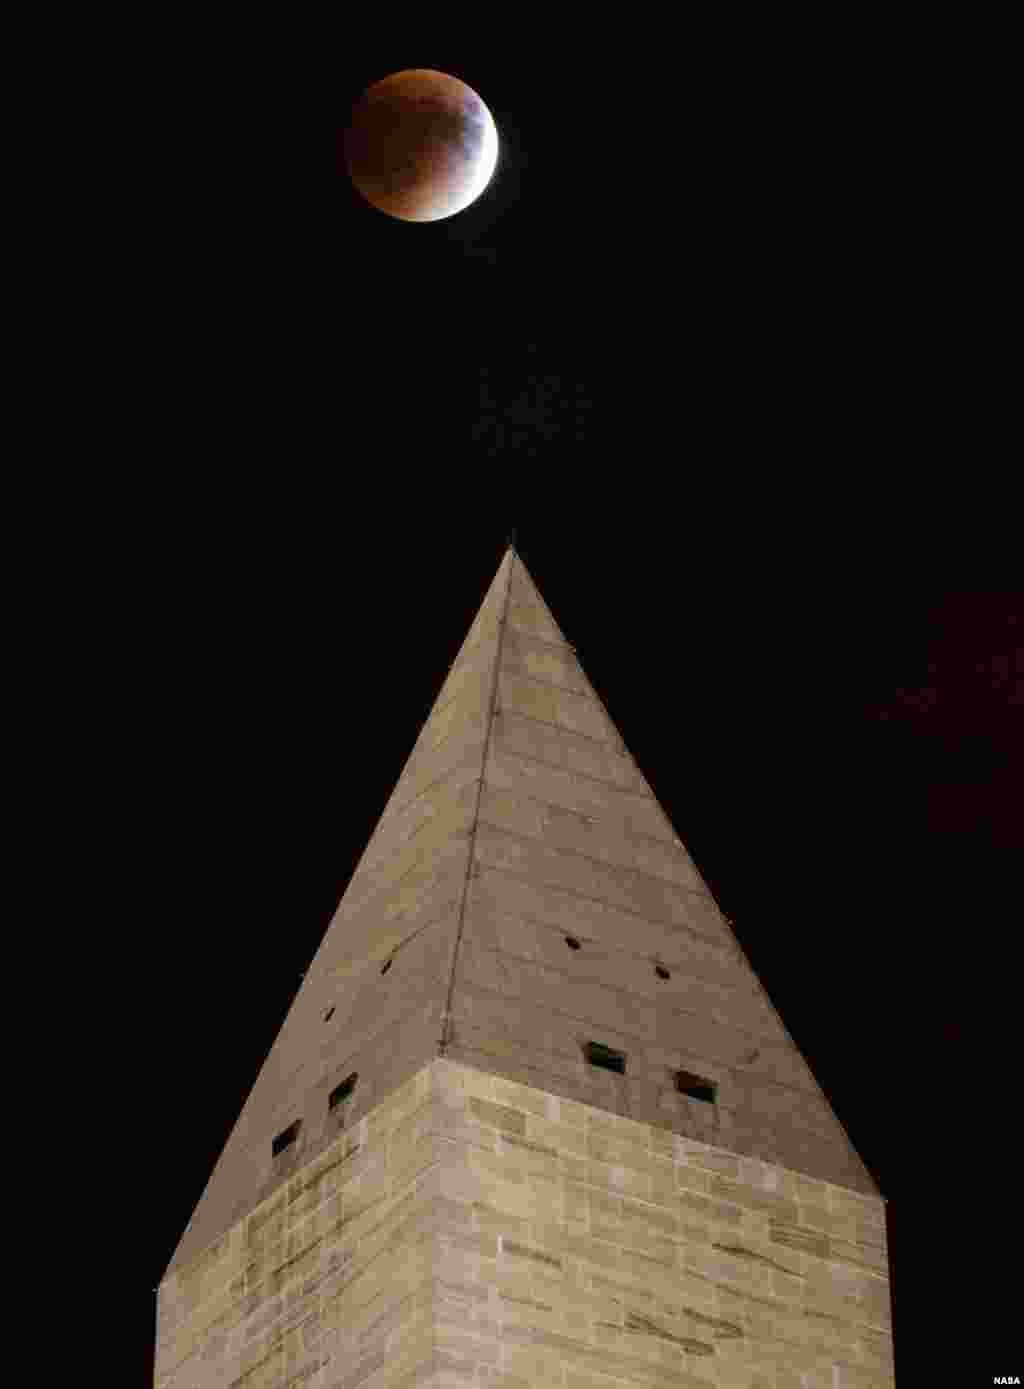 A perigee full moon, or supermoon, is seen behind the Washington Monument during a total lunar eclipse, Sept. 27, 2015, in Washington, D.C.  The combination of a supermoon and total lunar eclipse last occurred in 1982 and will not happen again until 2033. (NASA/Aubrey Gemignani)